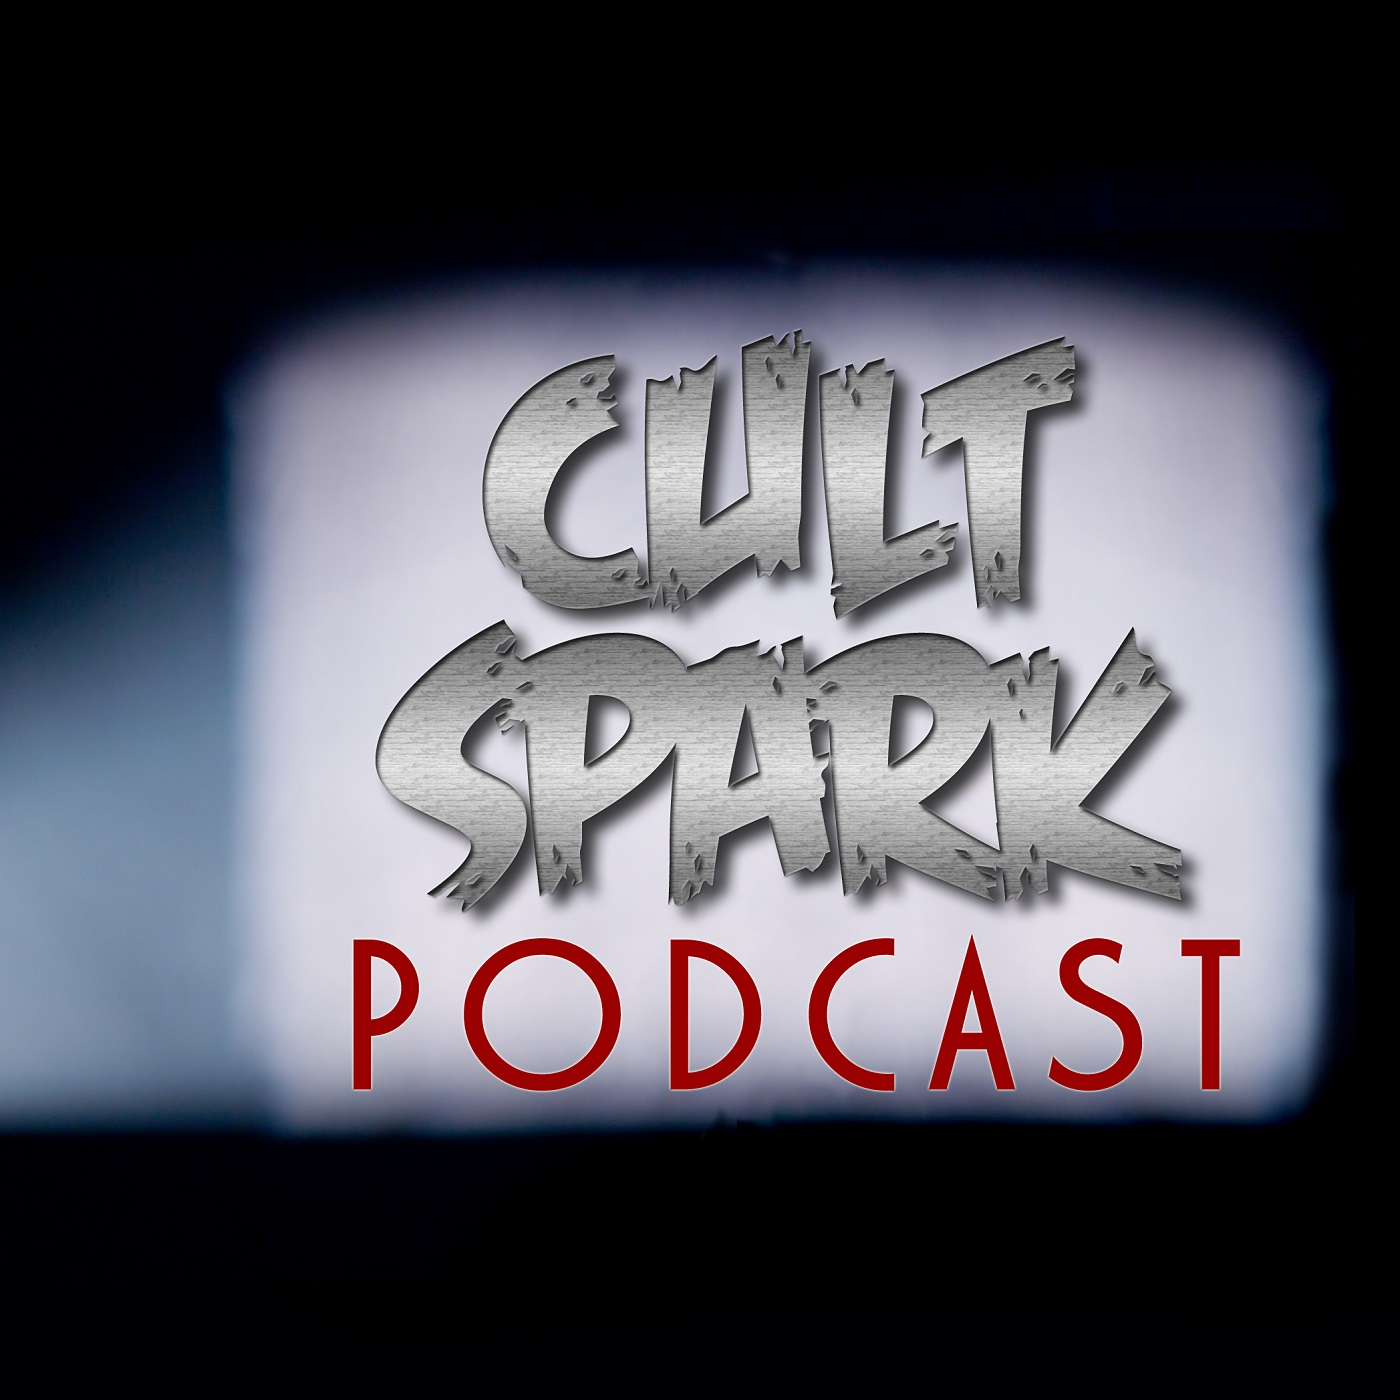 The Cult Spark Podcast